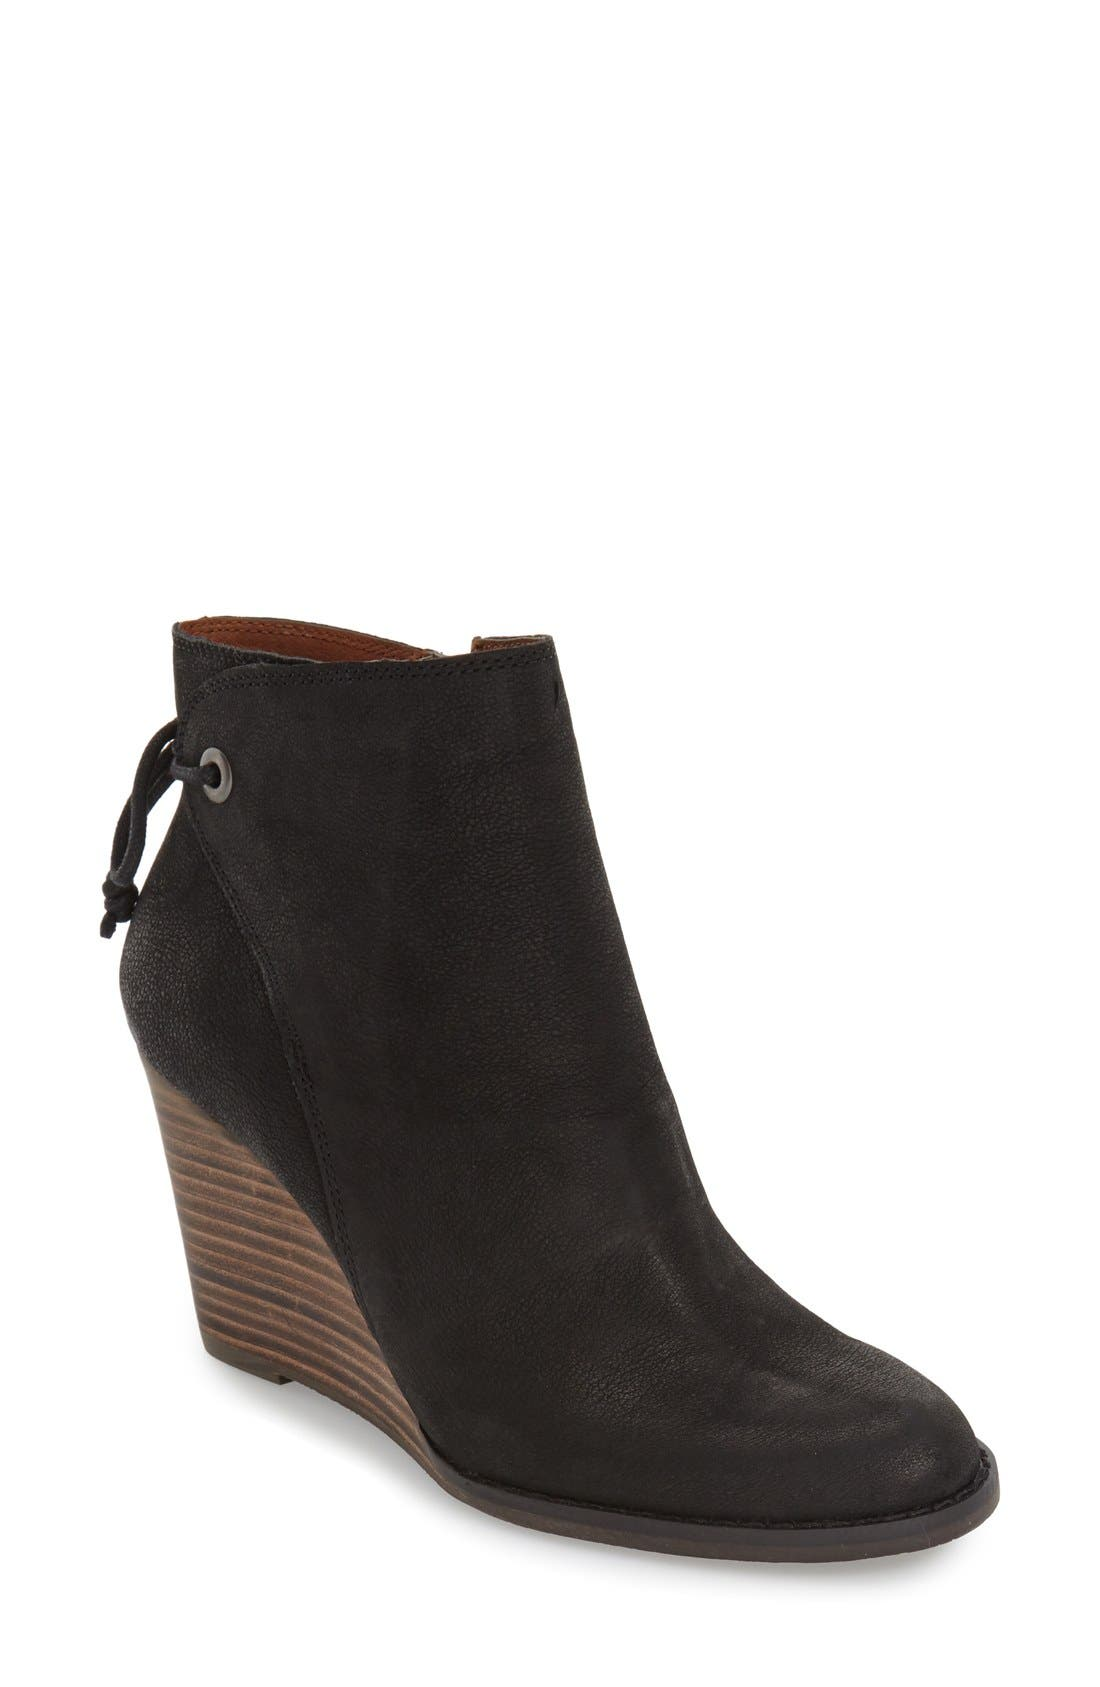 Alternate Image 1 Selected - Lucky Brand 'Yamina' Wedge Zip Bootie (Women)